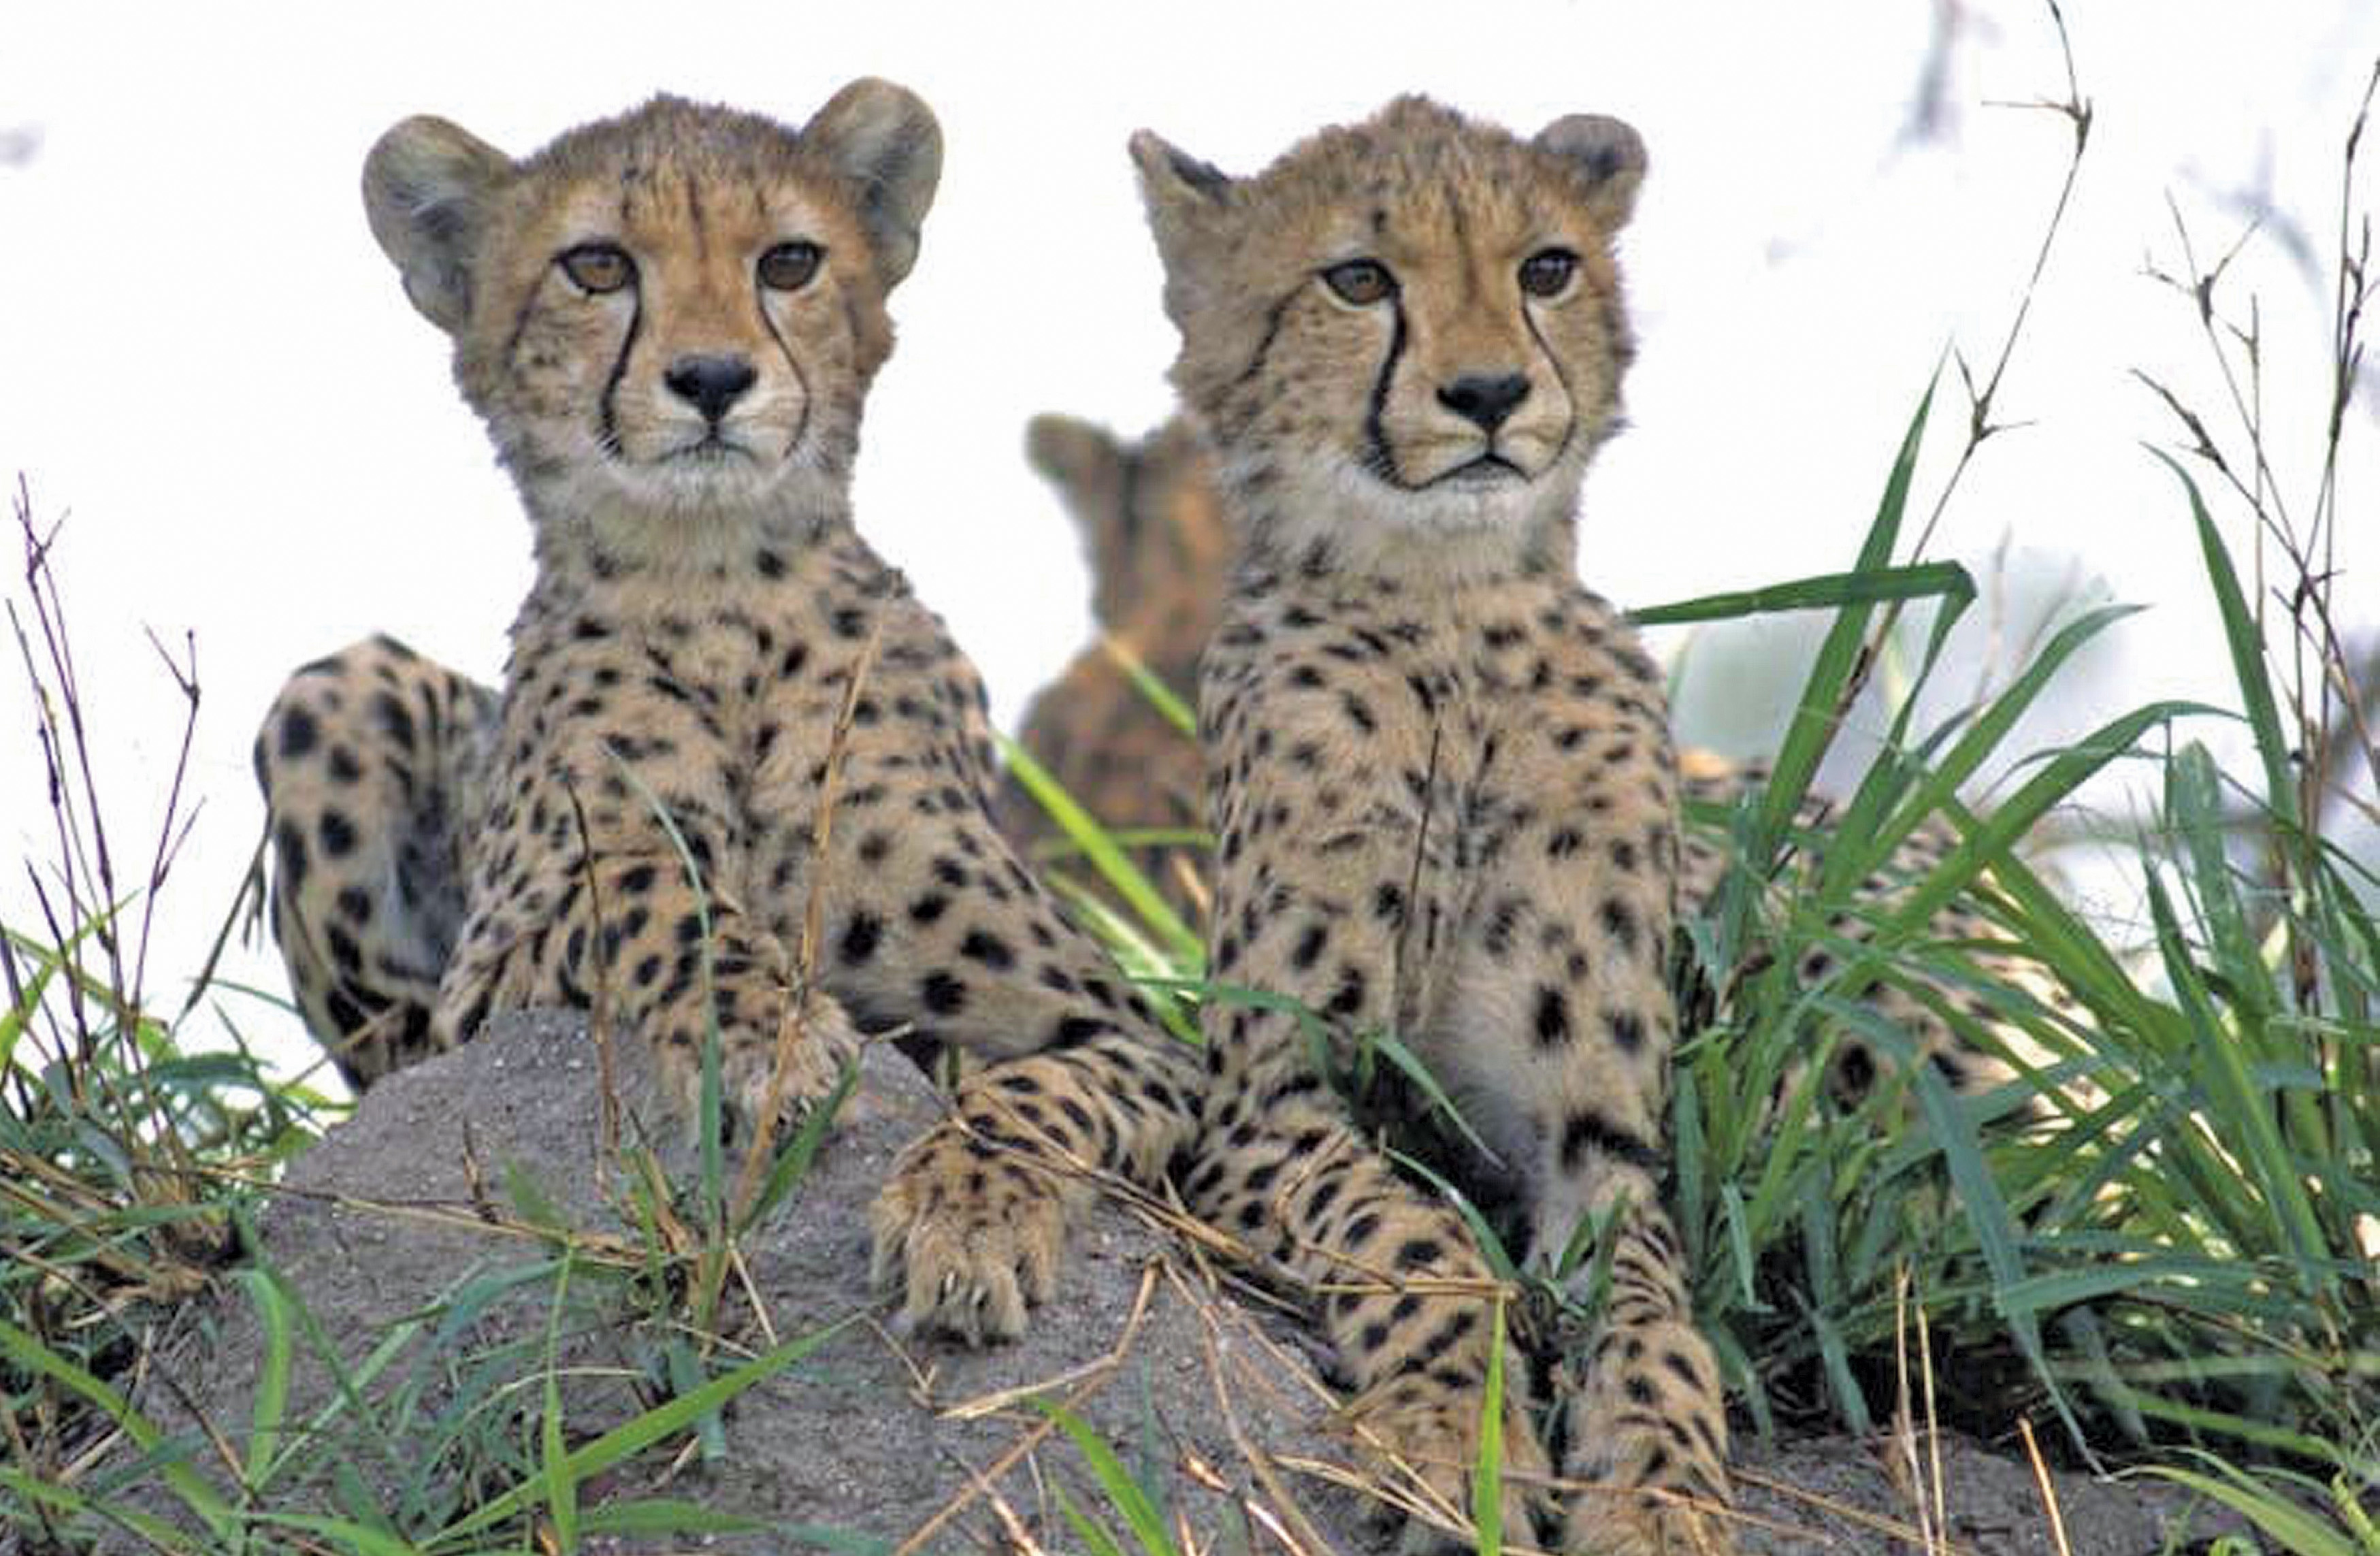 Cheetah Safari, Cheetah Cubs